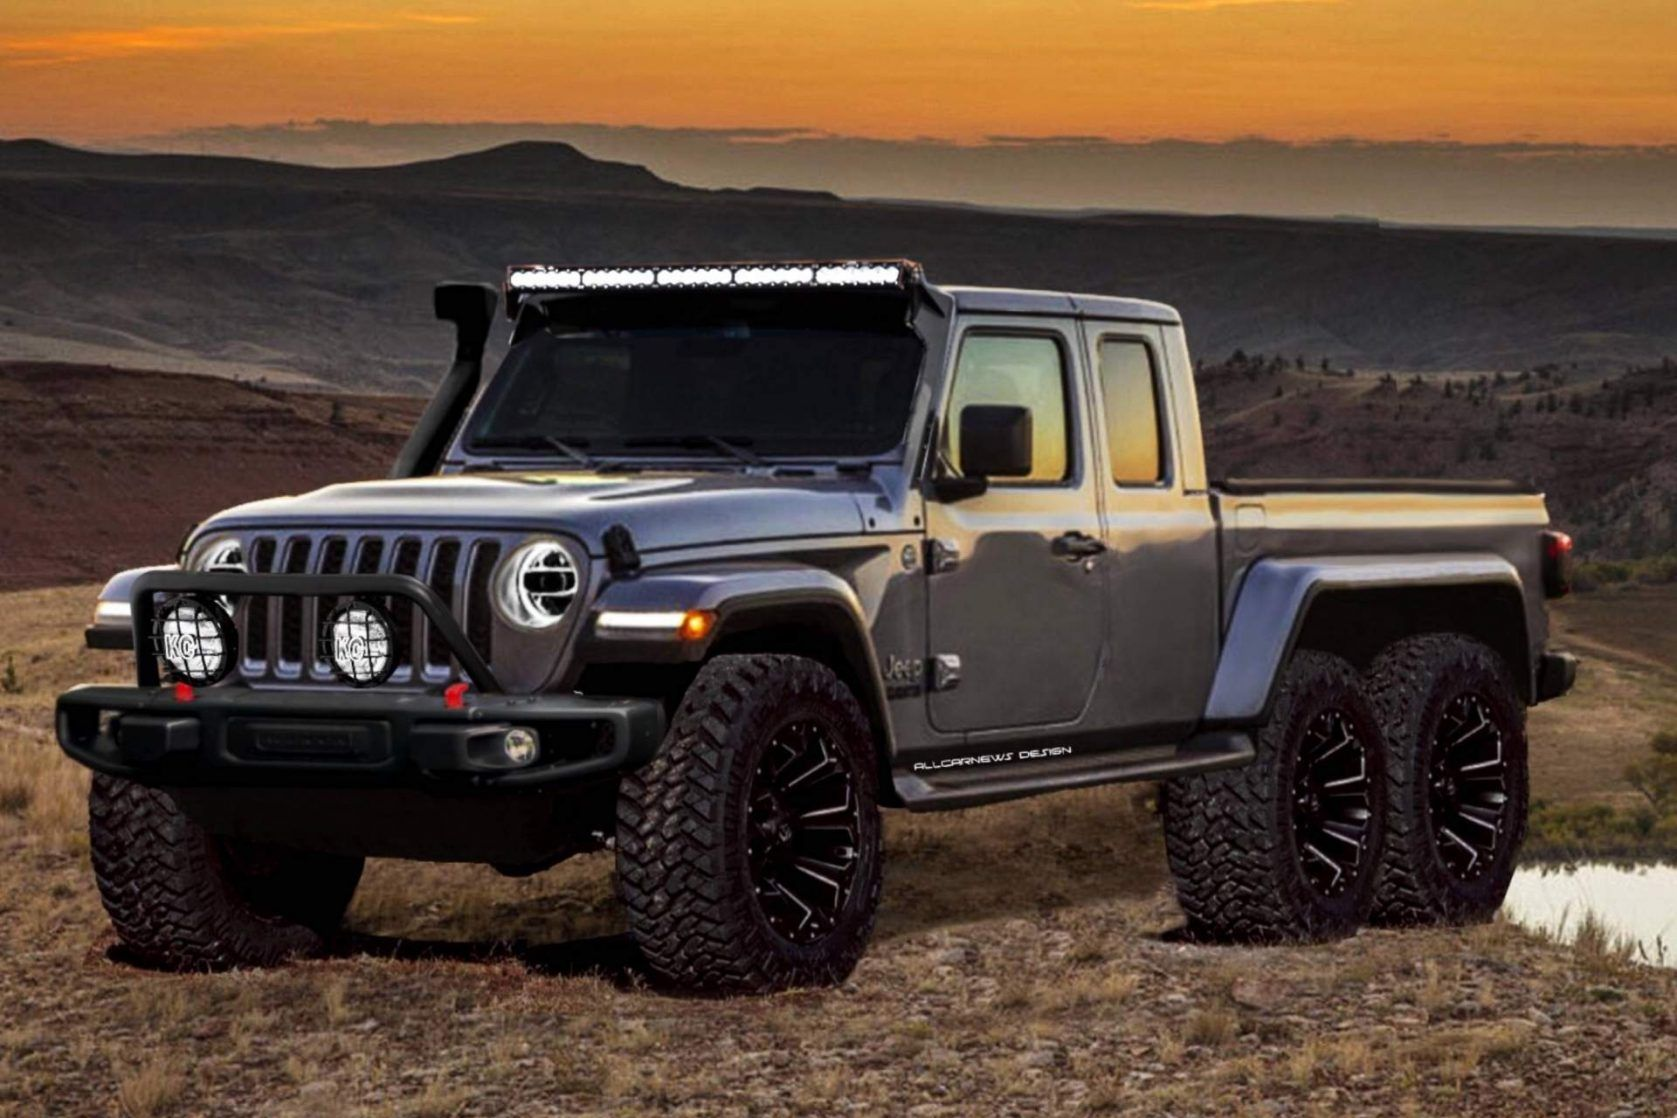 2020 Jeep Gladiator Review Pricing Release Date Engine Design And Photos Jeep Cj Jeep Commander Jeep Wagoneer